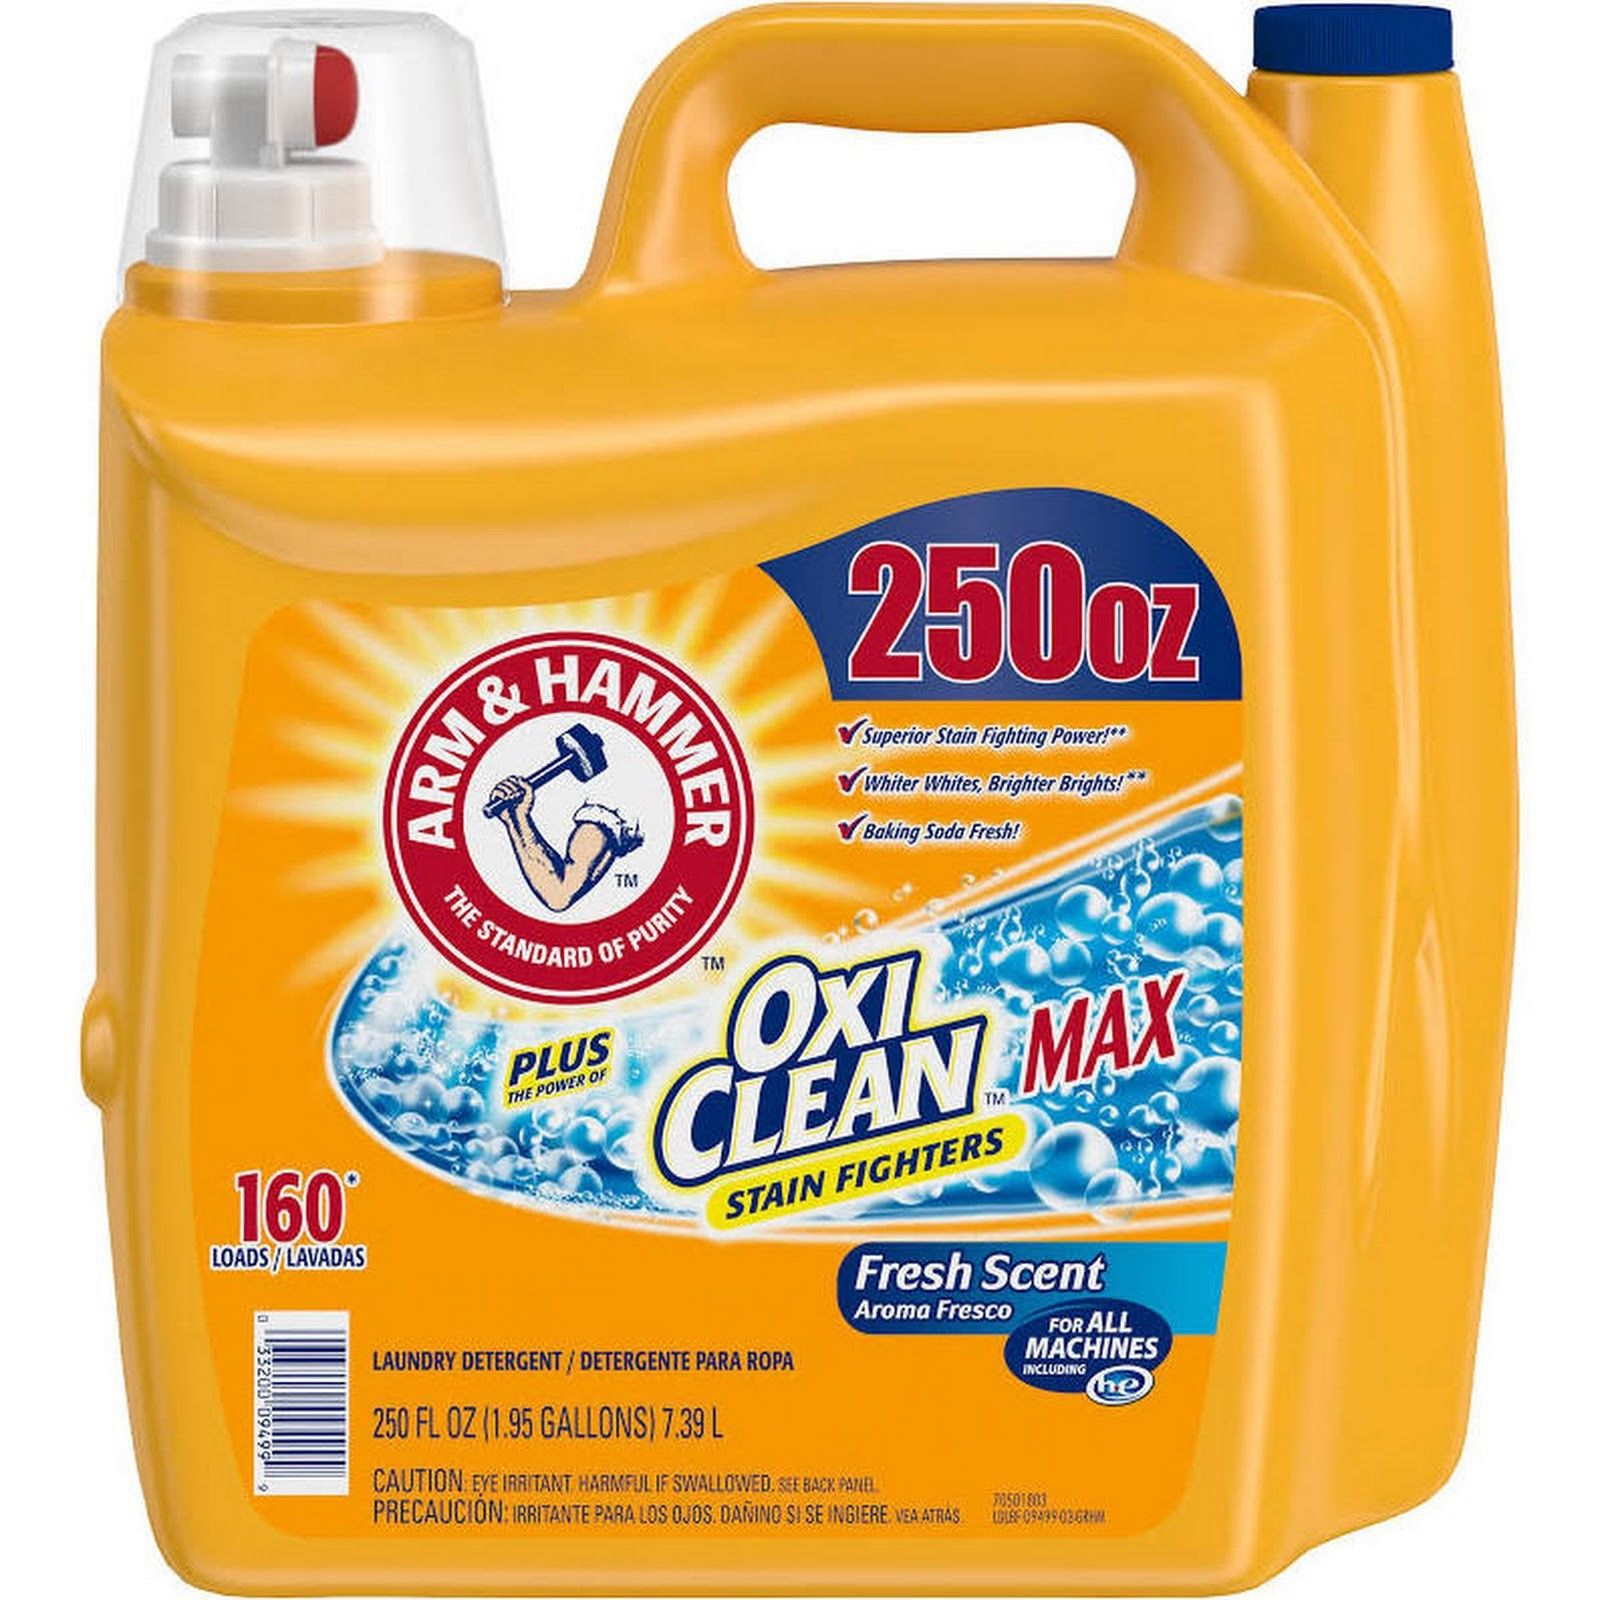 Arm & Hammer Plus OxiClean Max Liquid Laundry Detergent 250 fl oz, 160 Loads